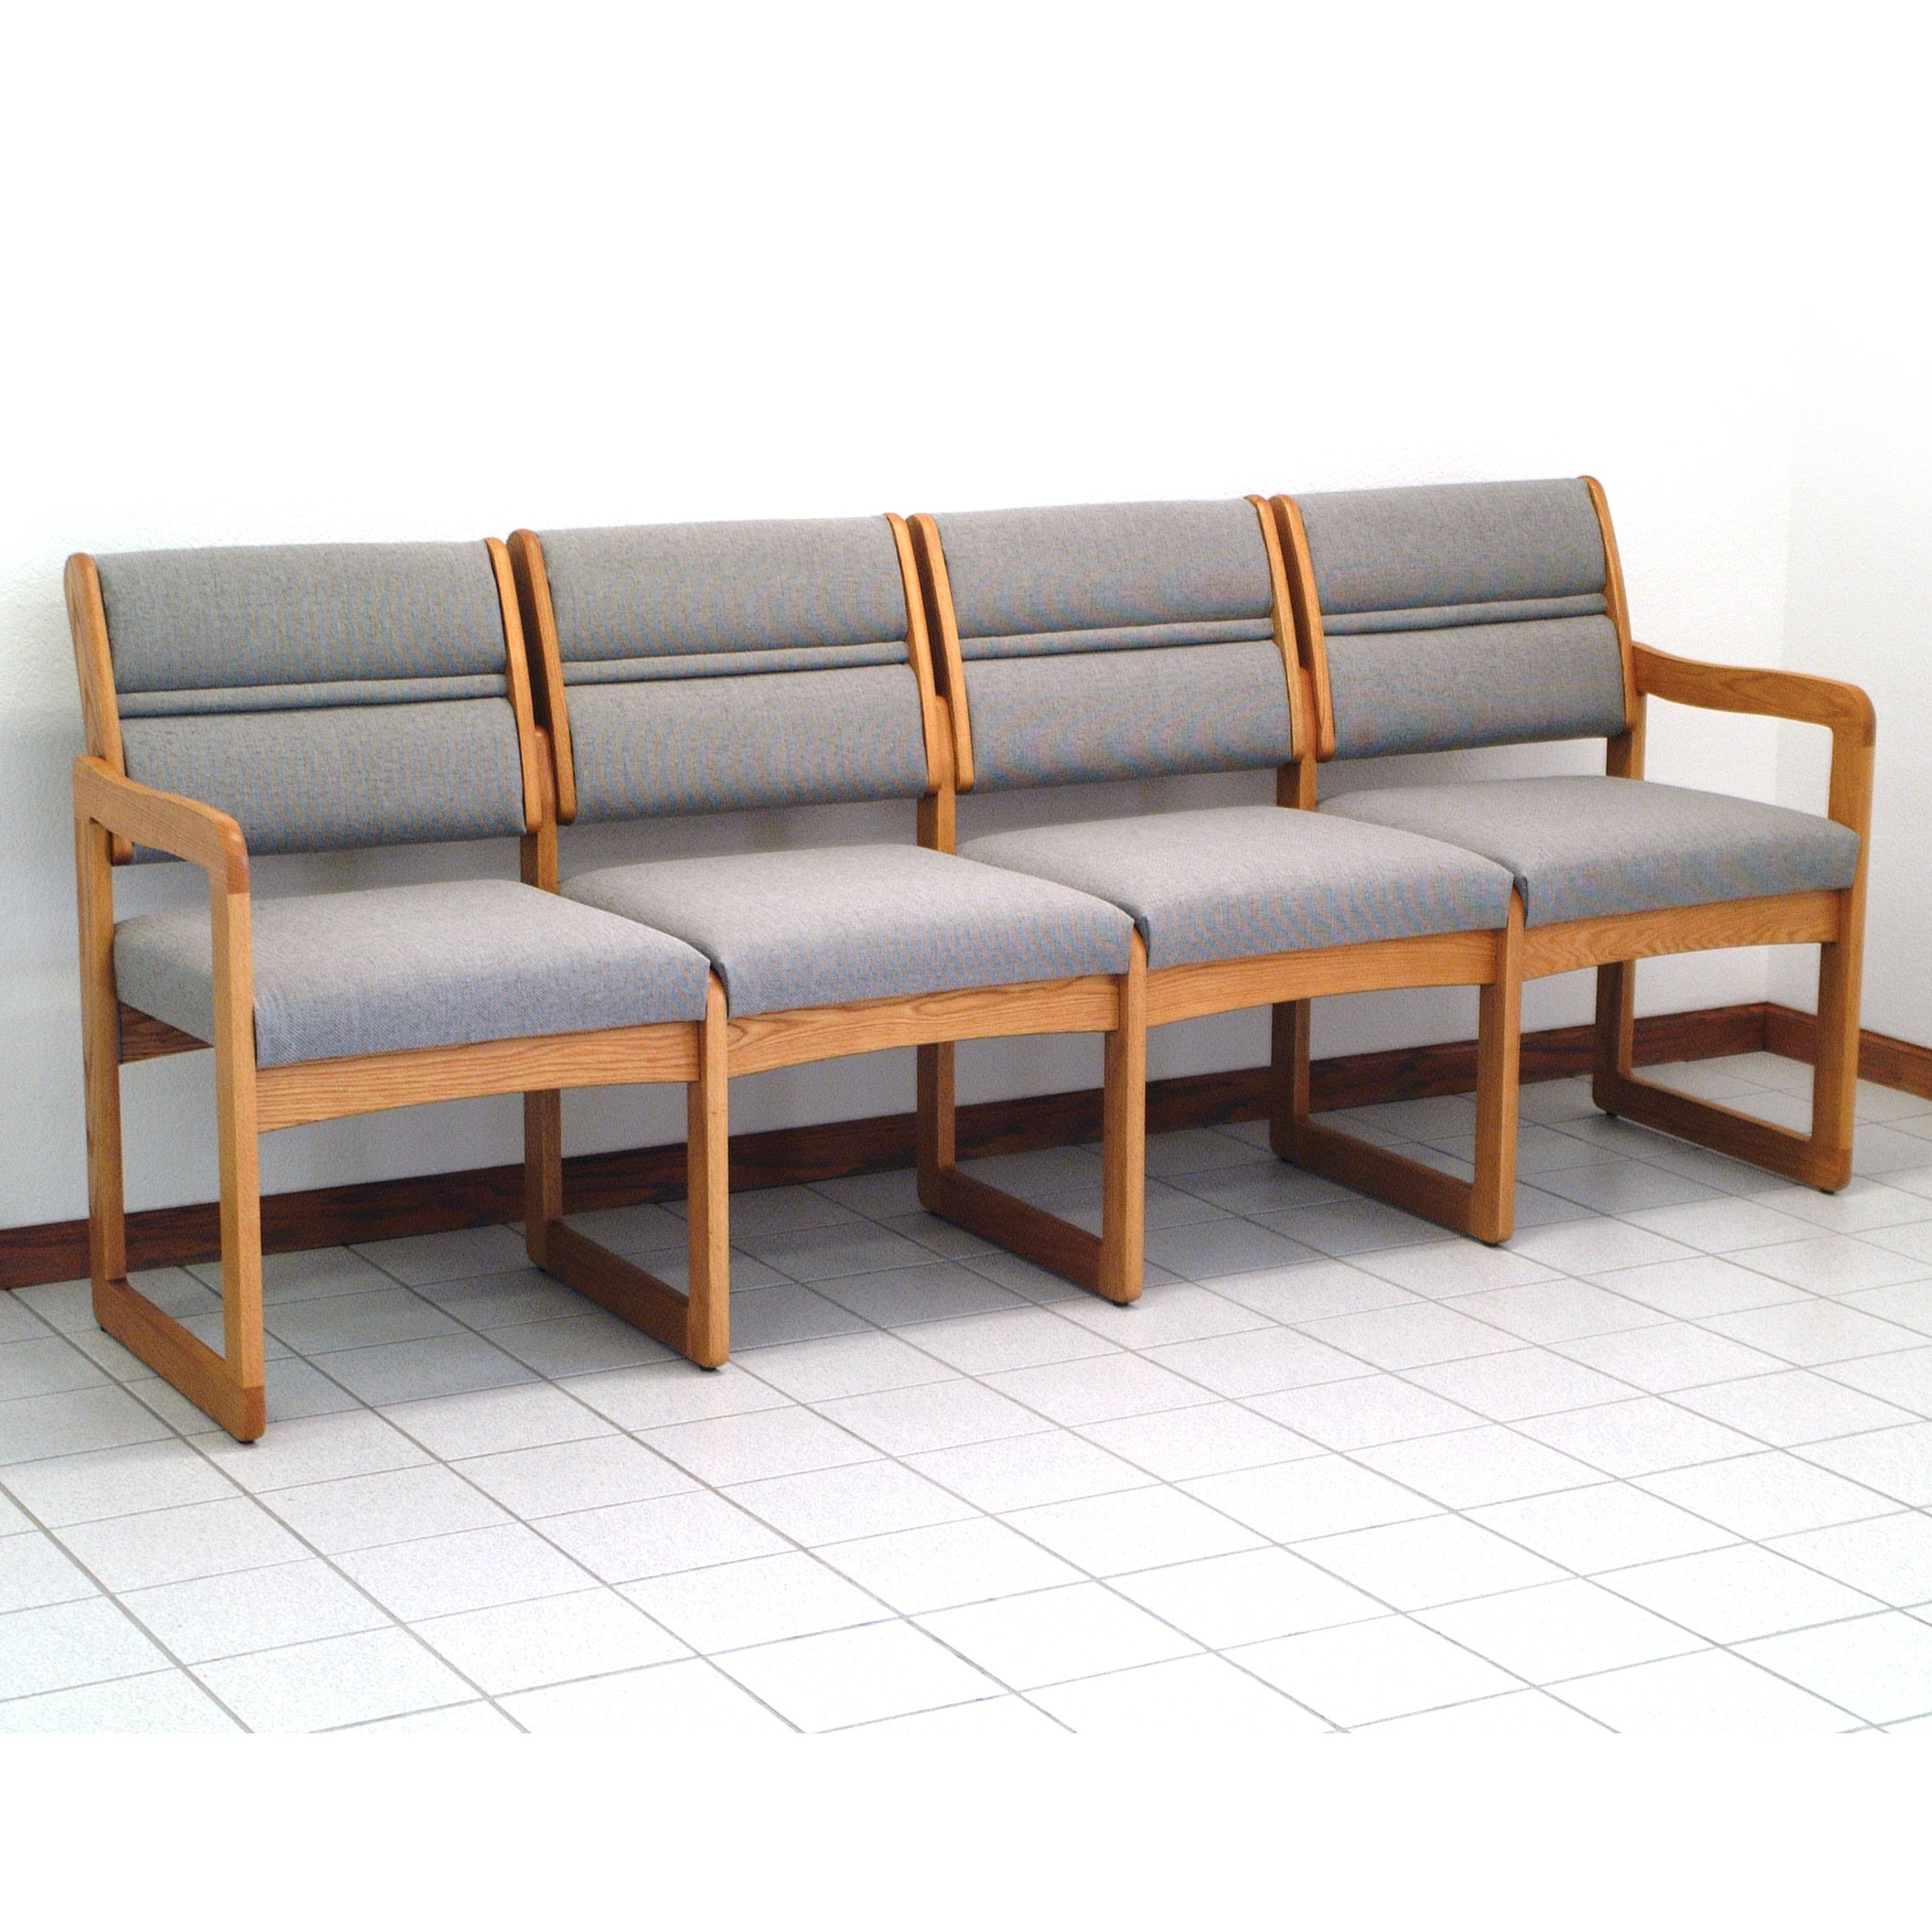 Wooden Mallet DW2-4 Solid Oak 4-Seat Sofa